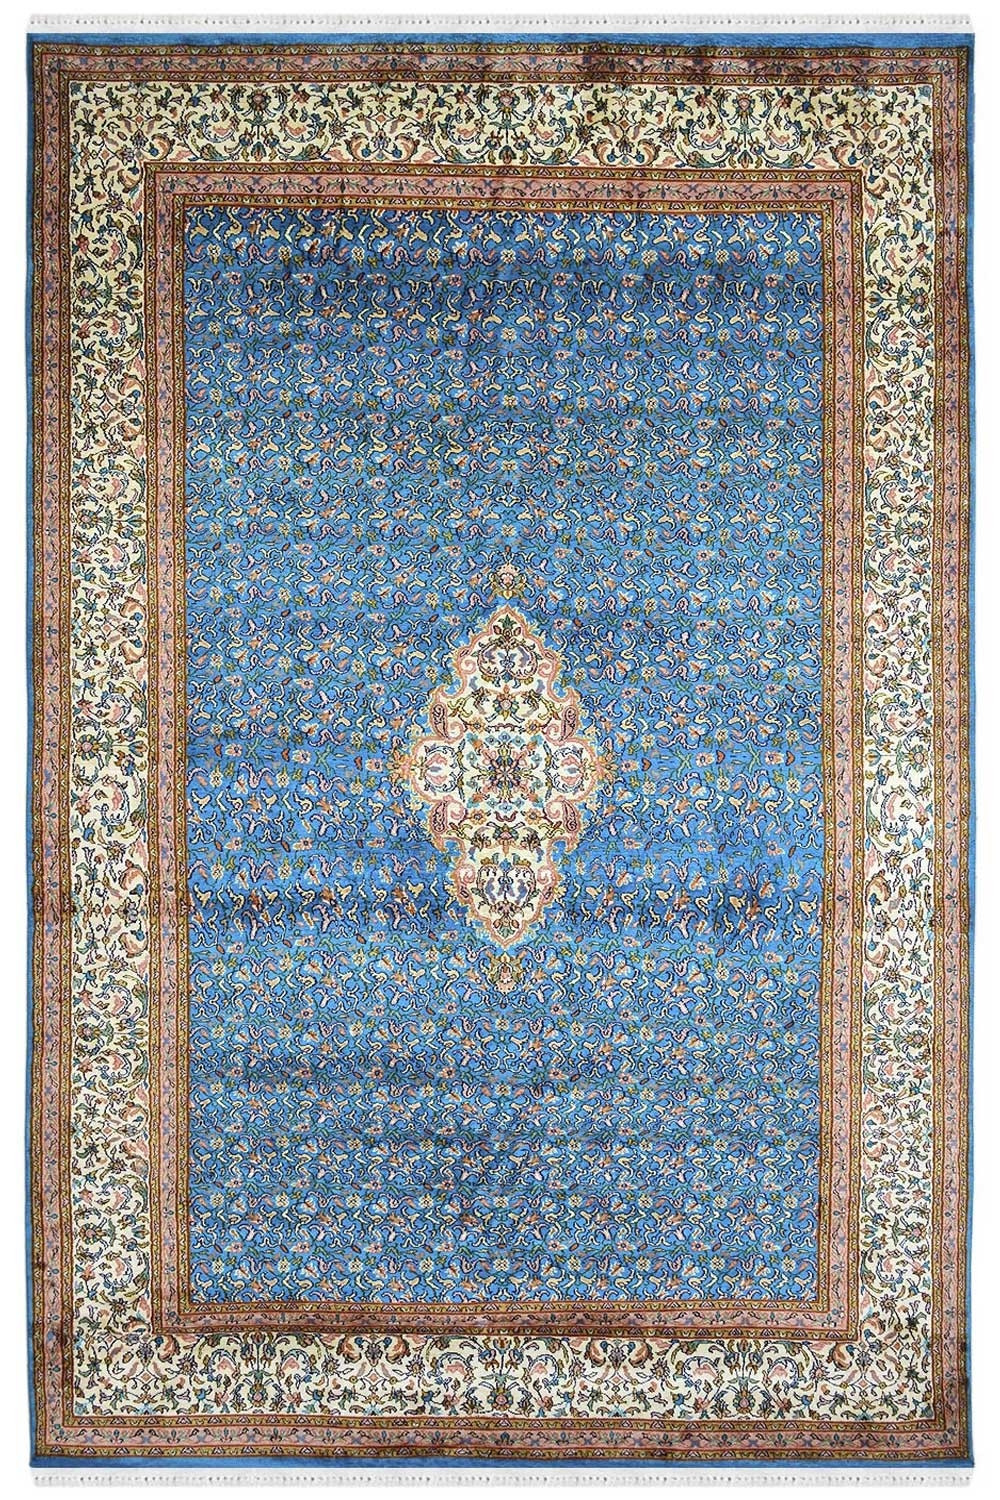 Vibrant Turquoise Color Pure Silk On Silk Carpet In